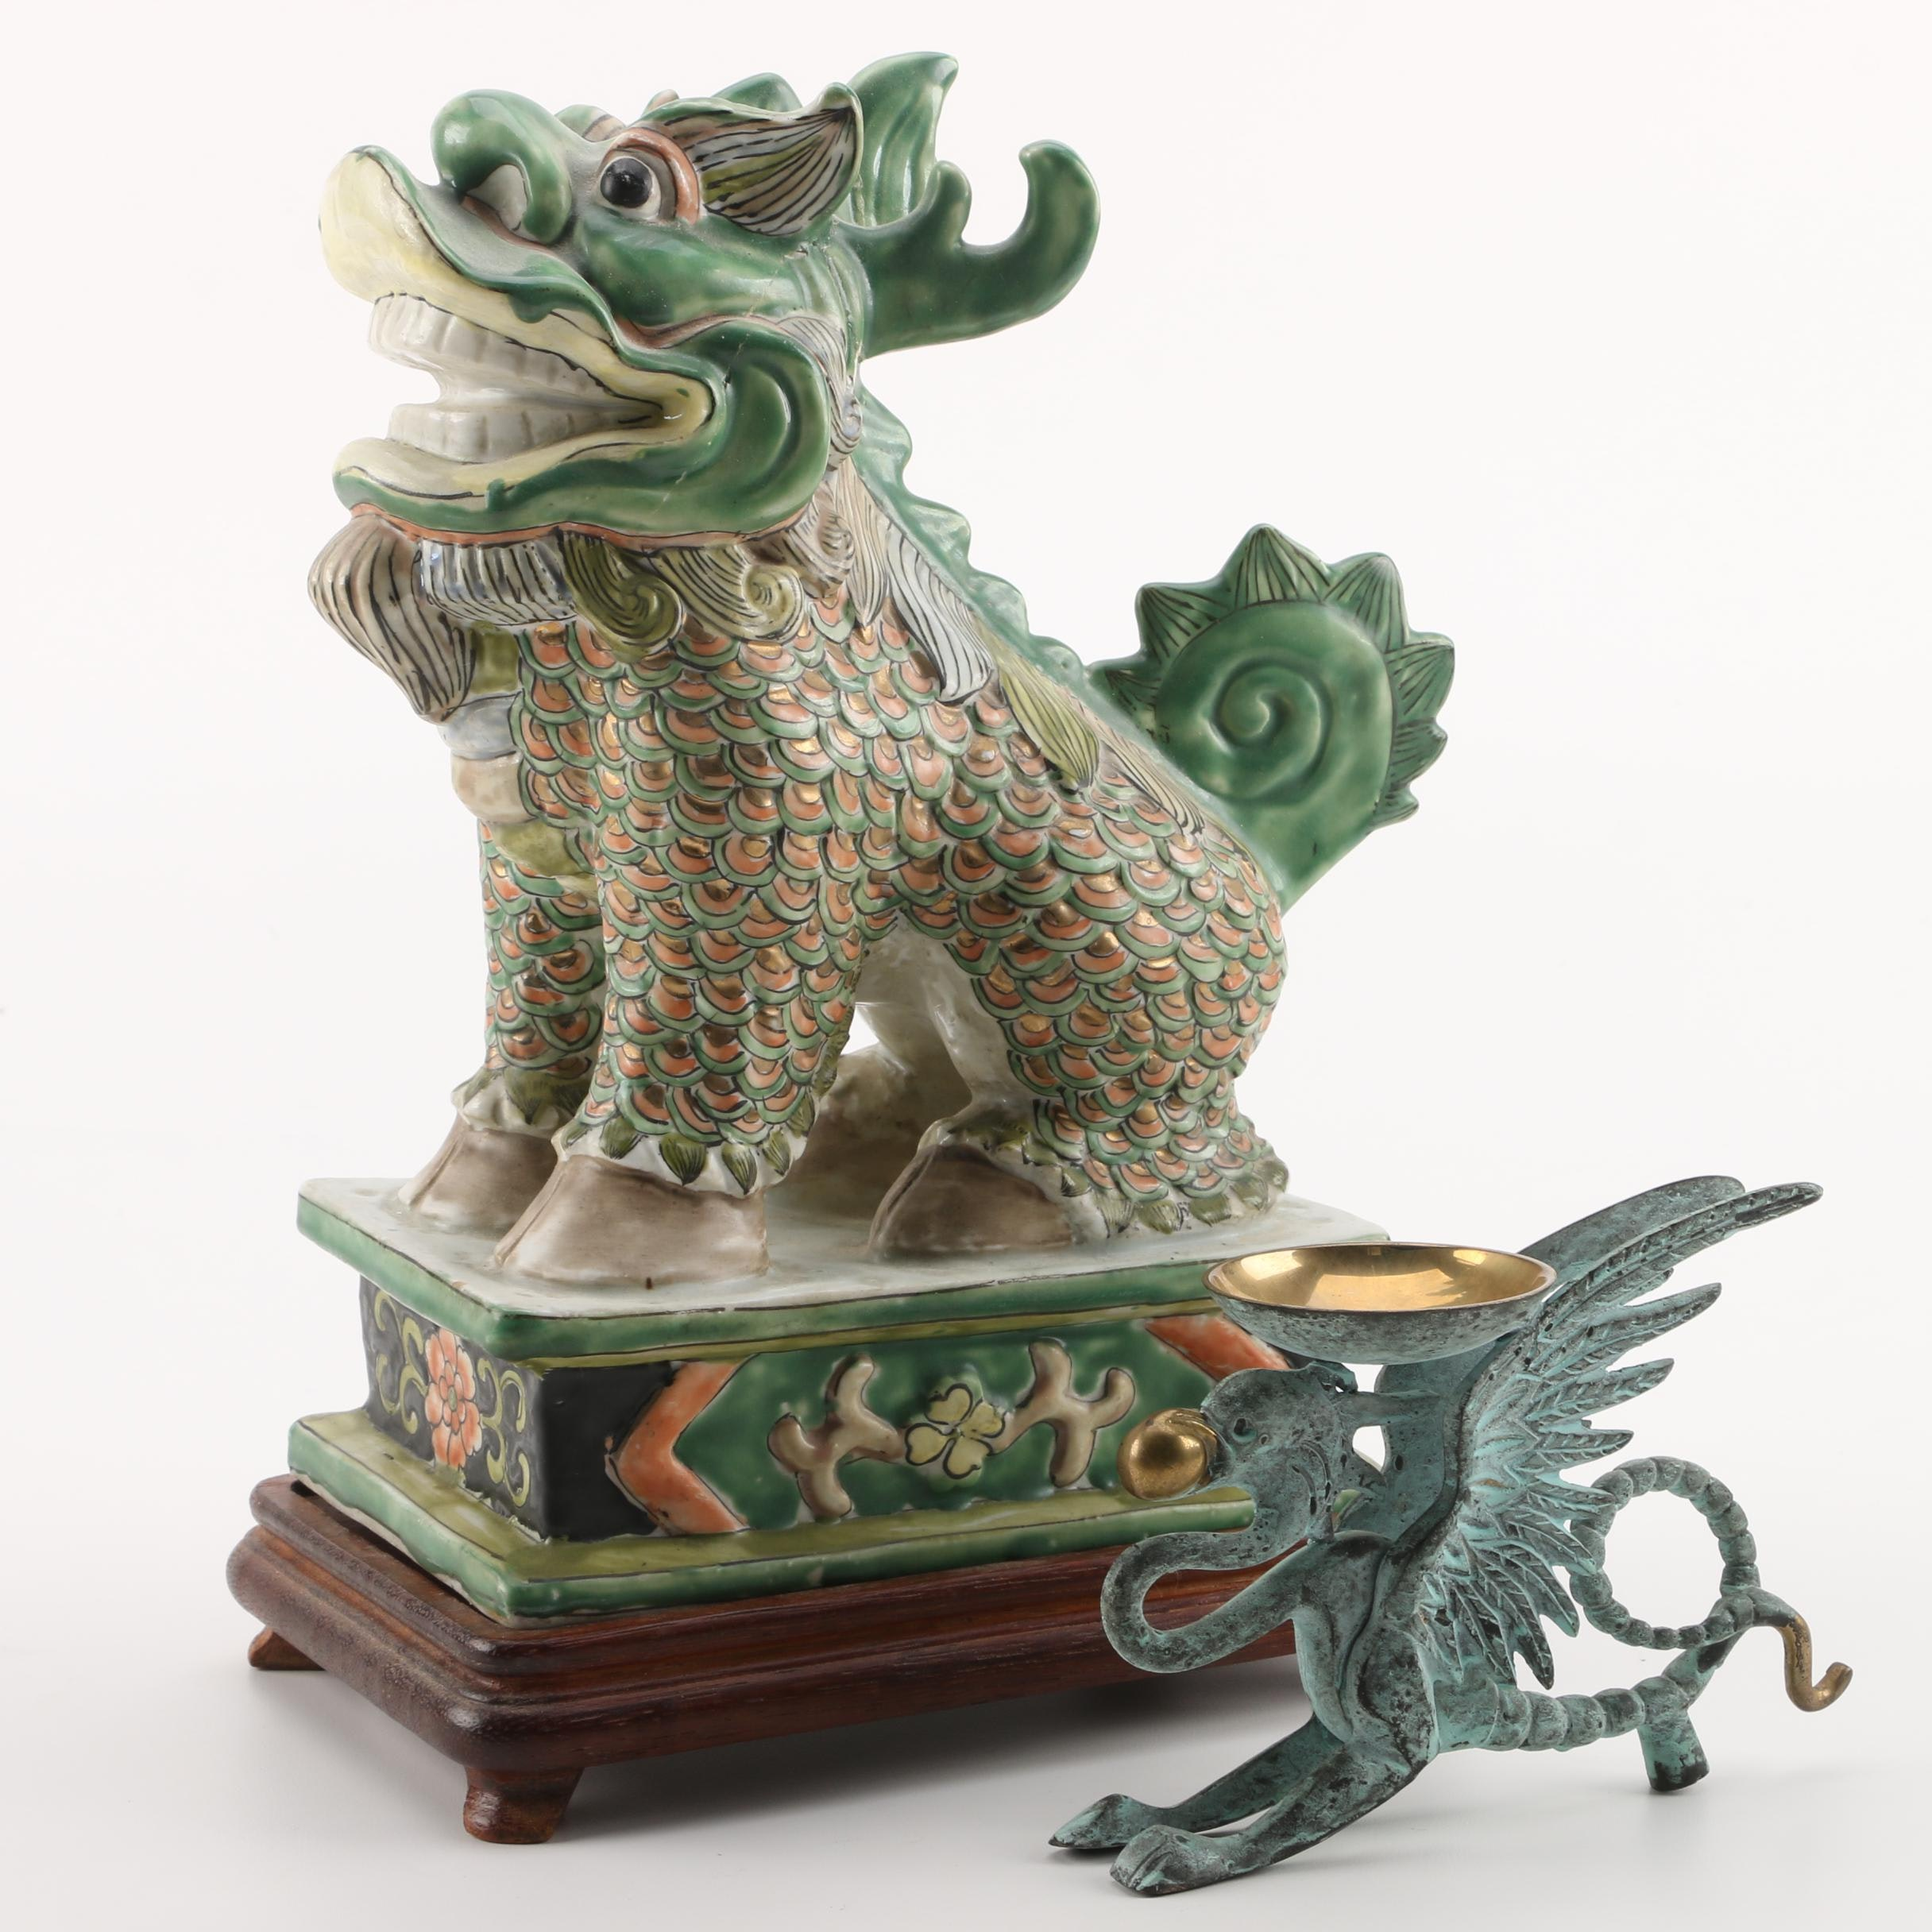 Guardian Lion and Chimera Figurines